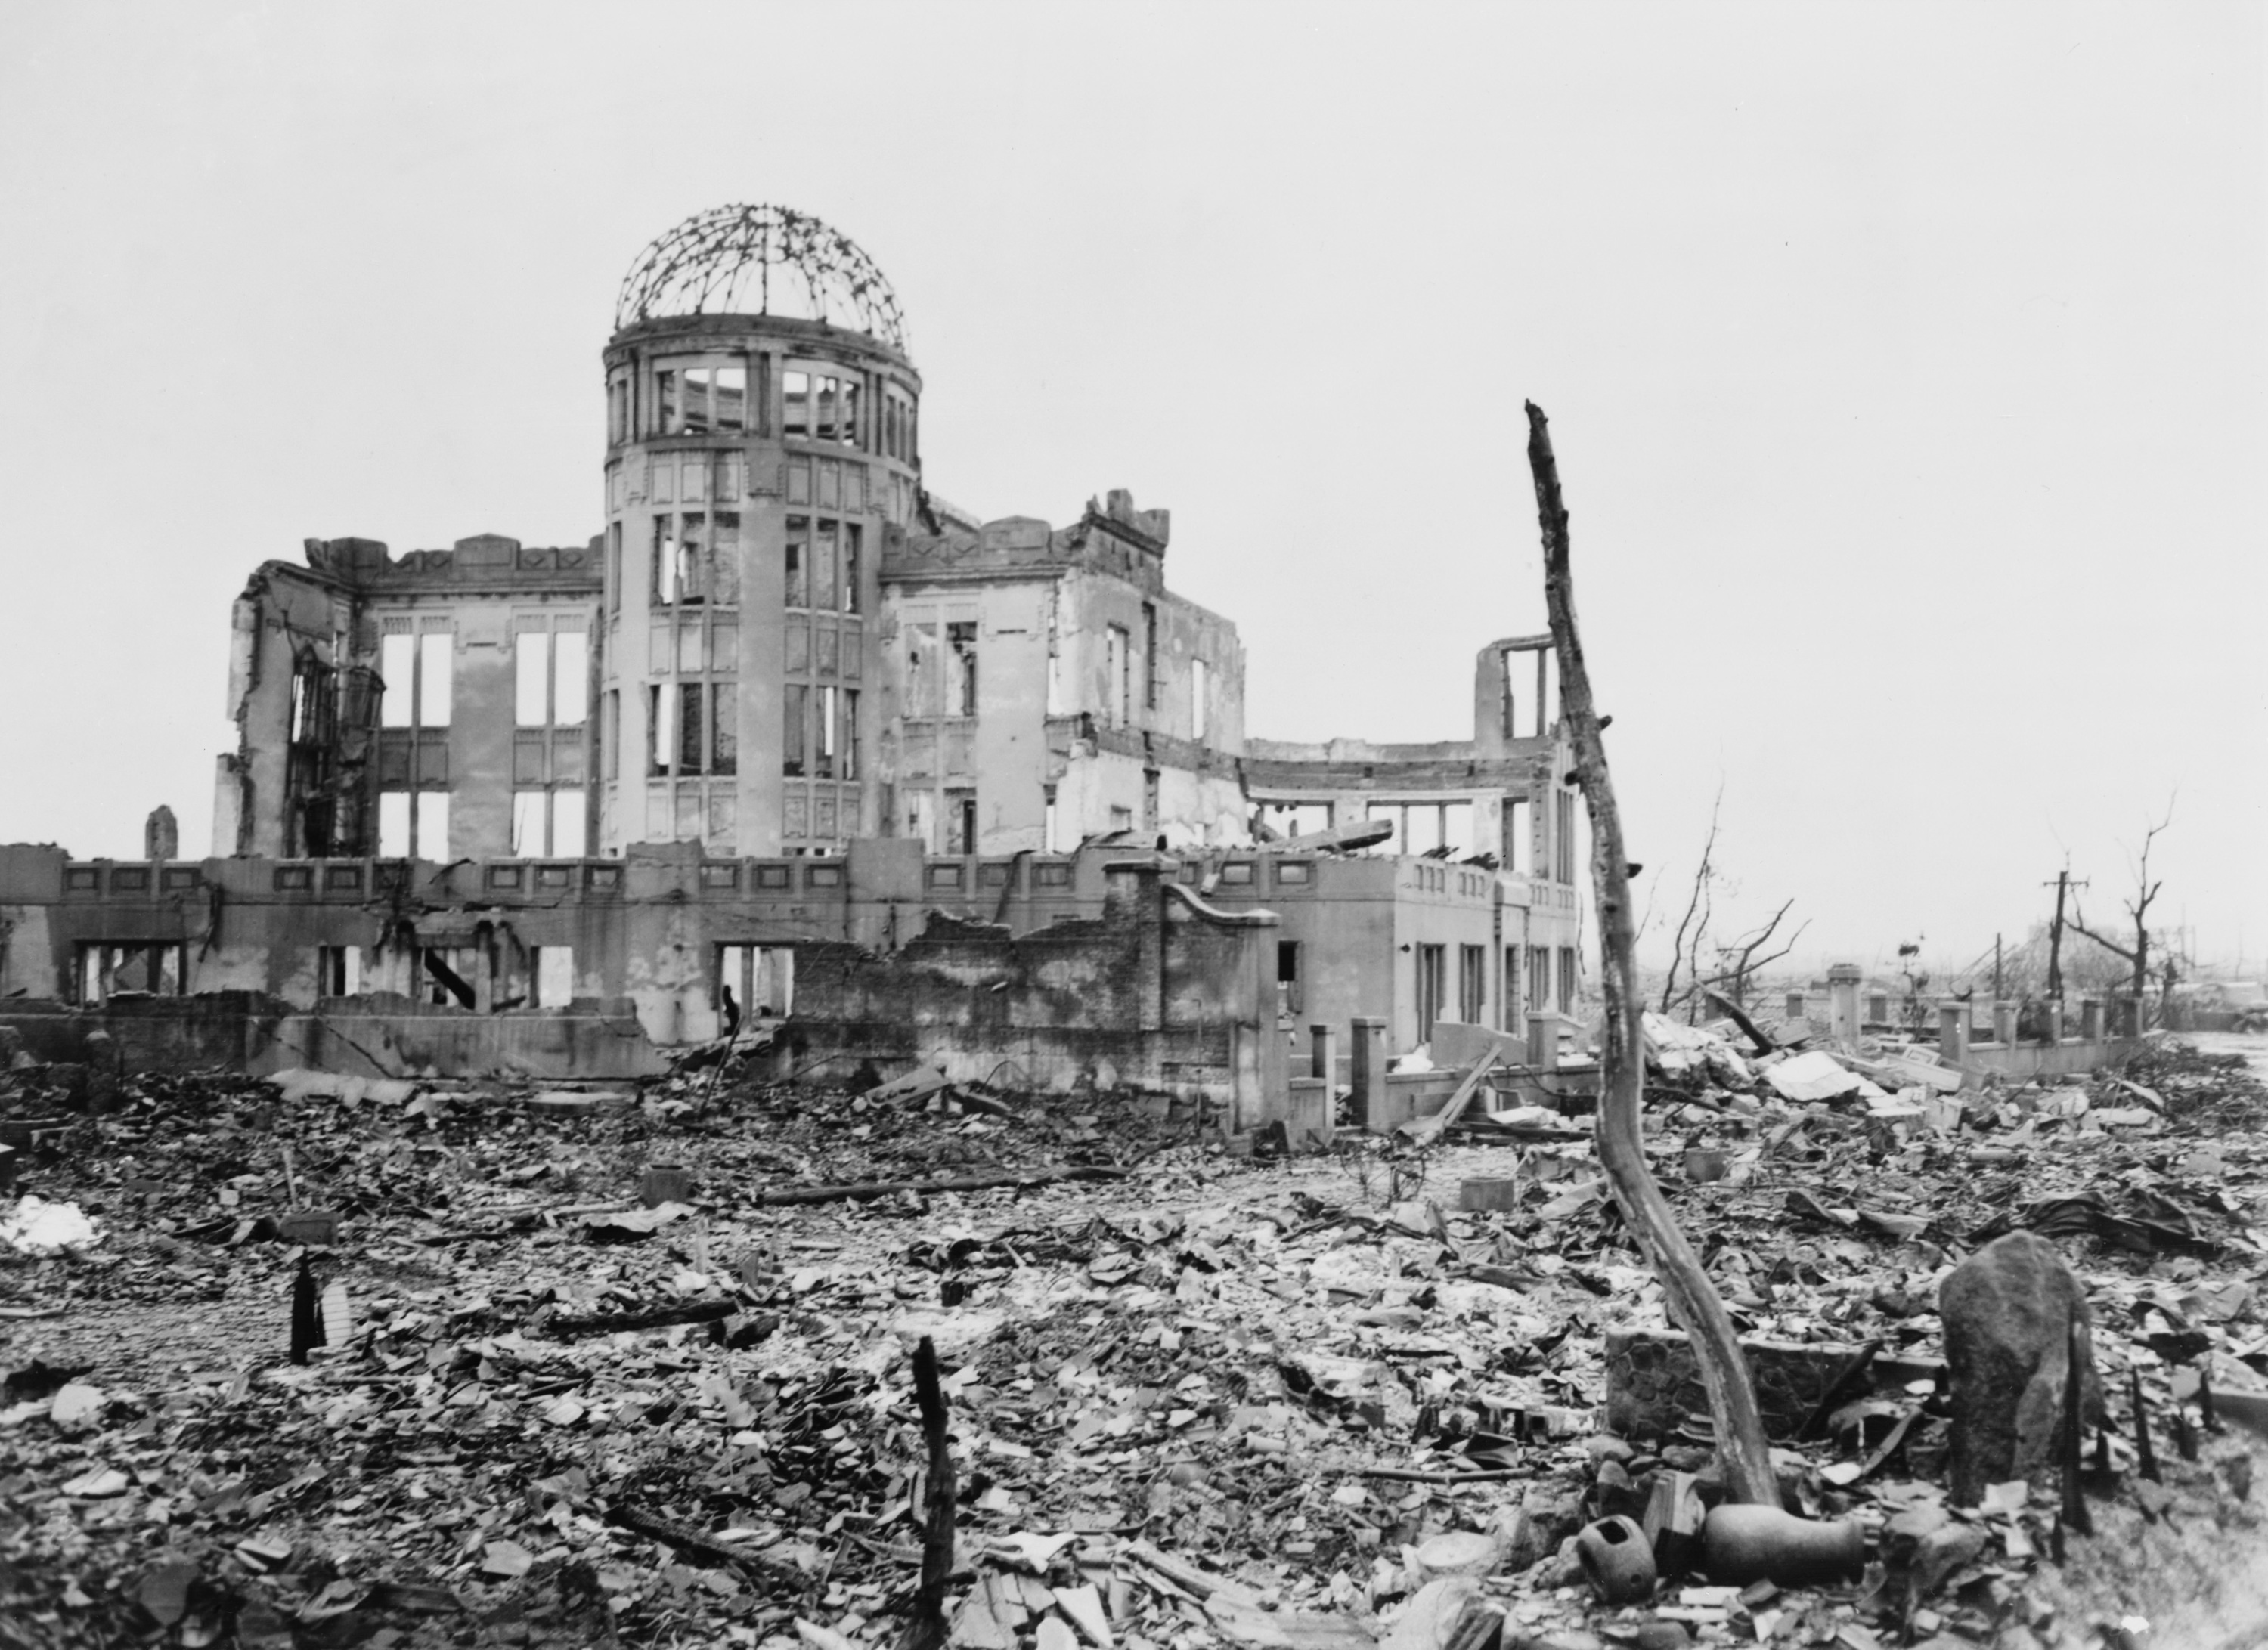 the atomic bombing of hiroshima The atomic bombing of nagasaki (nagasaki, japan, august 9, 1945) events  dawn of the atomic era, 1945 the war enters its final phase, 1945  also used was the report on the atomic bombings of hiroshima and nagasaki in the official manhattan district history,.